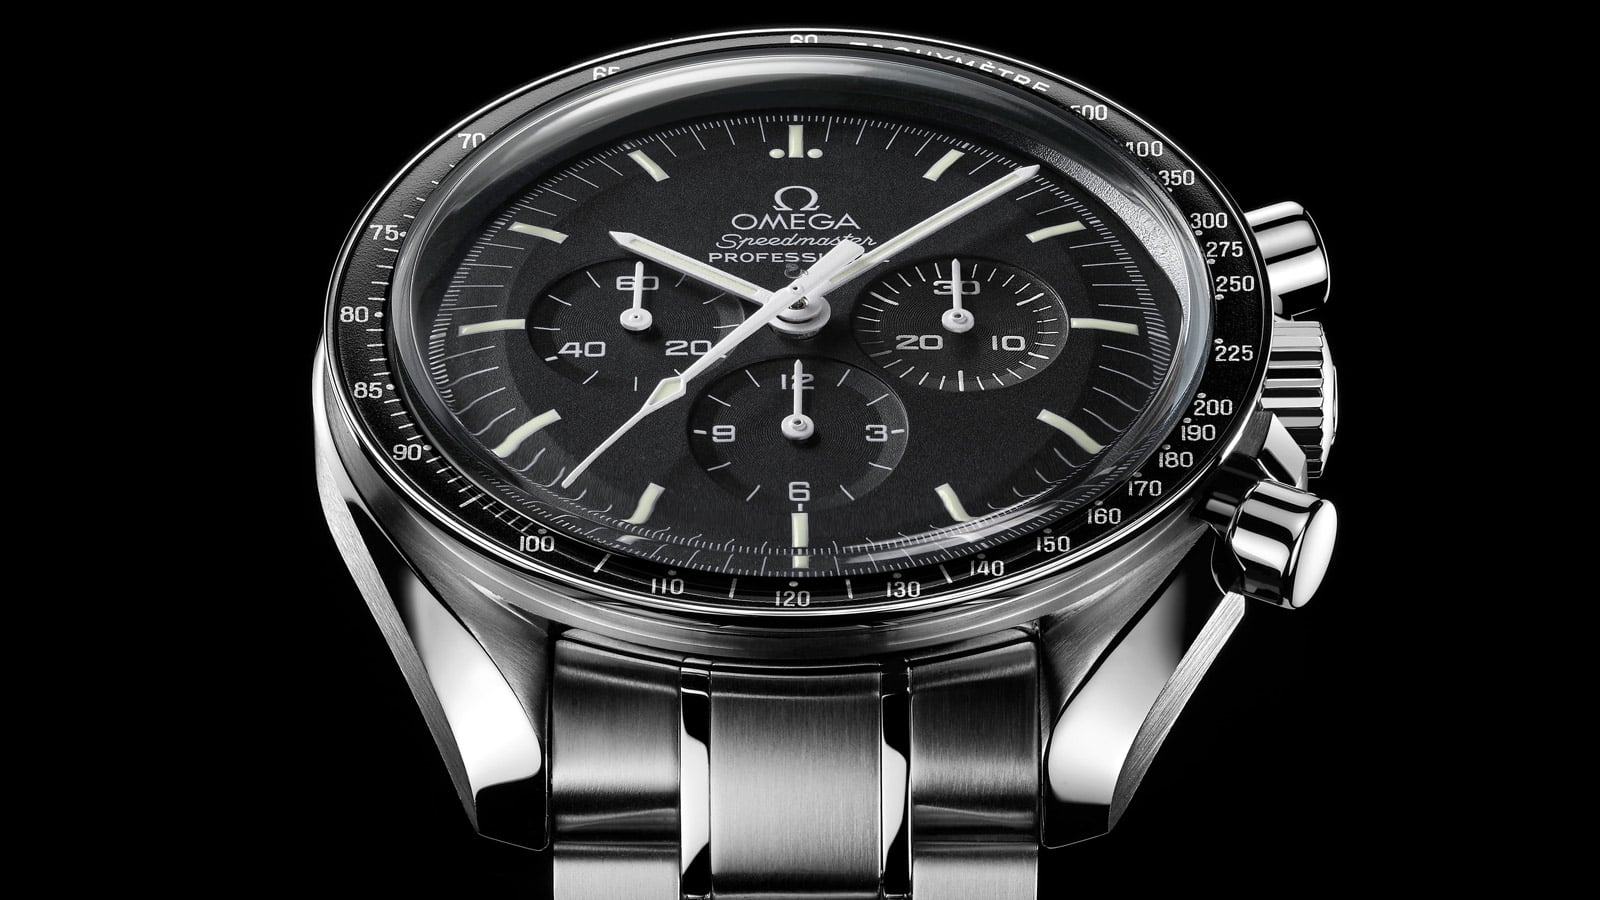 THE WORLD'S MOST FAMOUS CHRONOGRAPH